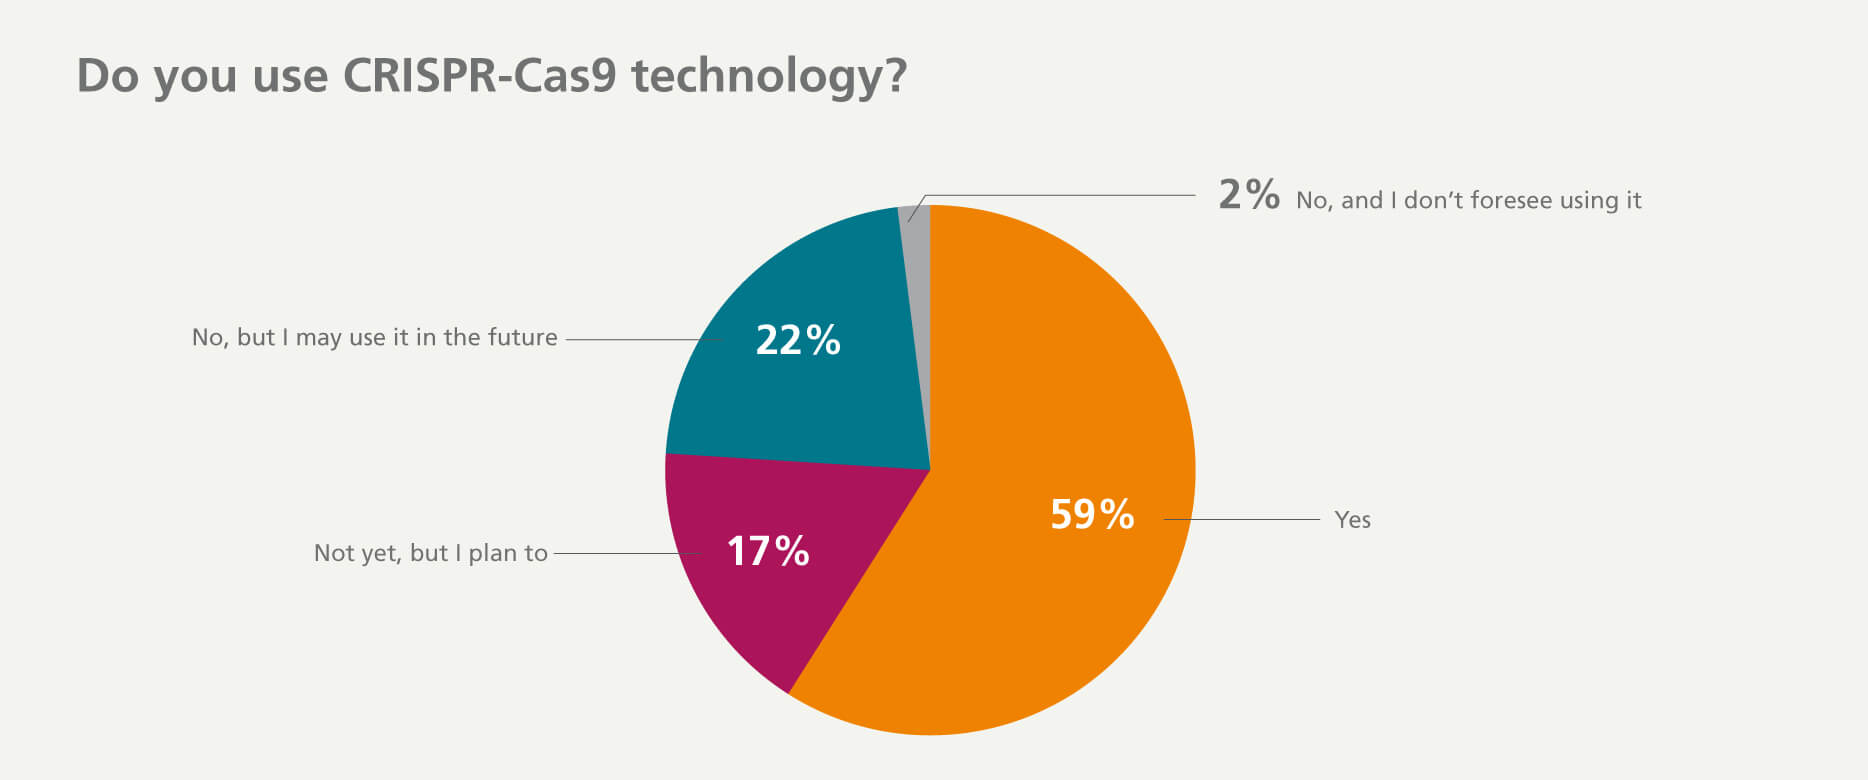 59% of survey respondents have used CRISPR-Cas9 technology, 17% plan to use it in upcoming projects, and 22% do not plan to use this technology.